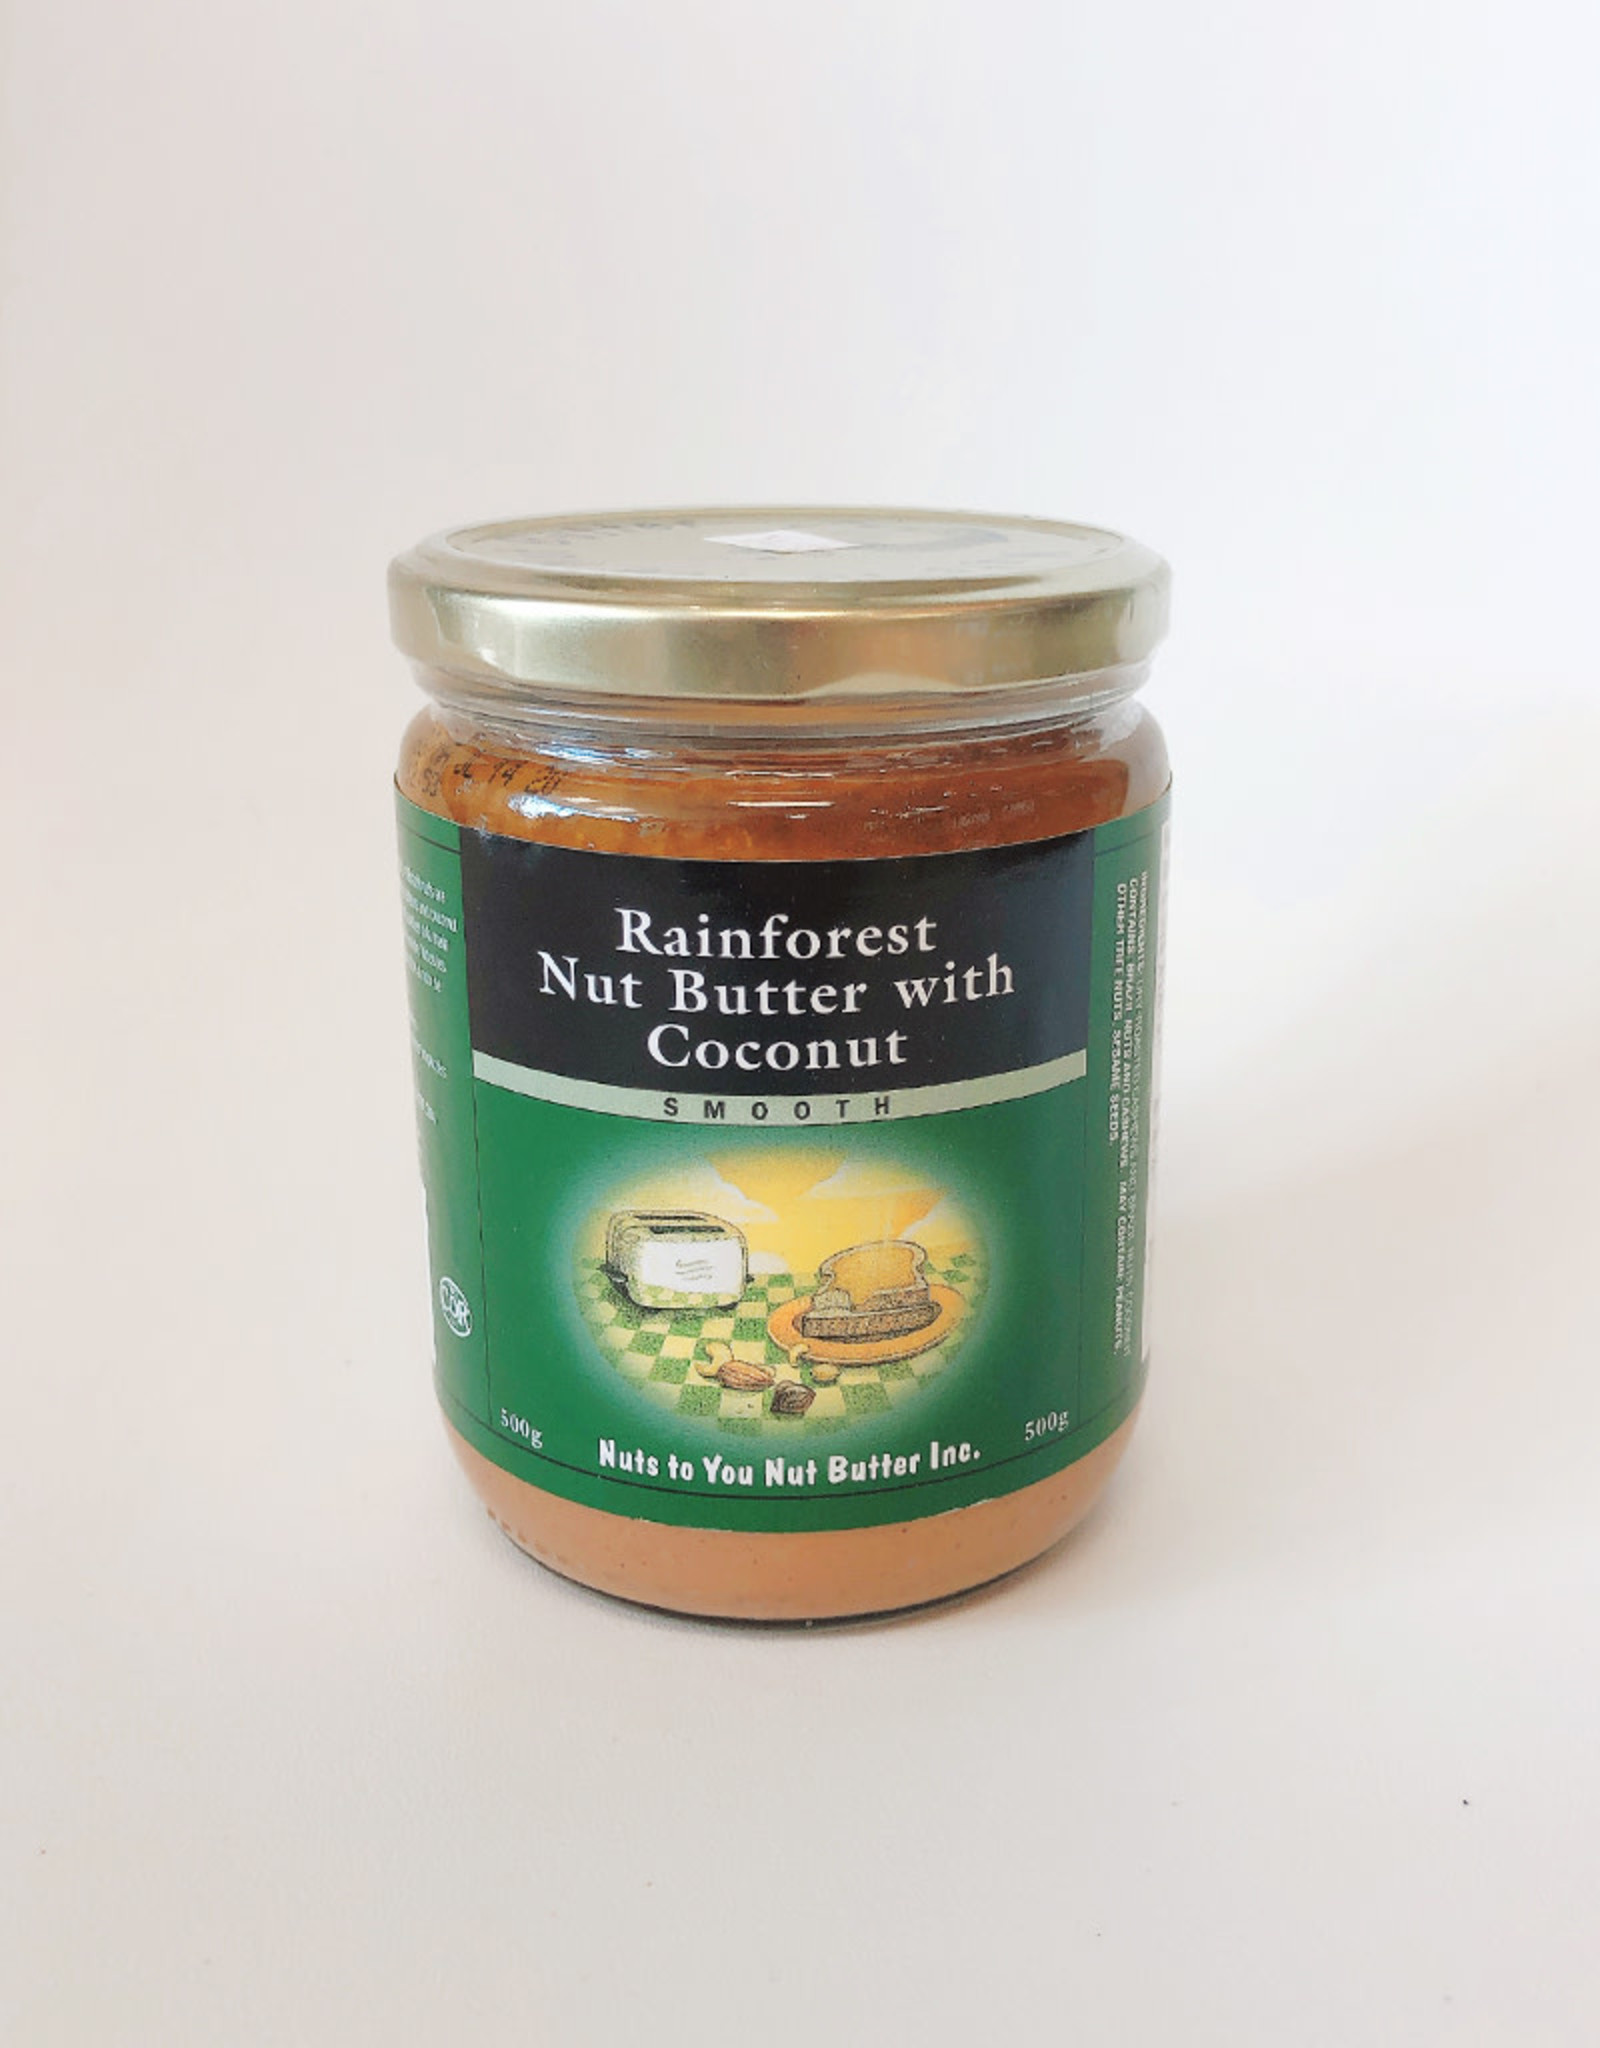 Nuts To You Nuts To You - Rainforest Nut Butter with Coconut (250g)